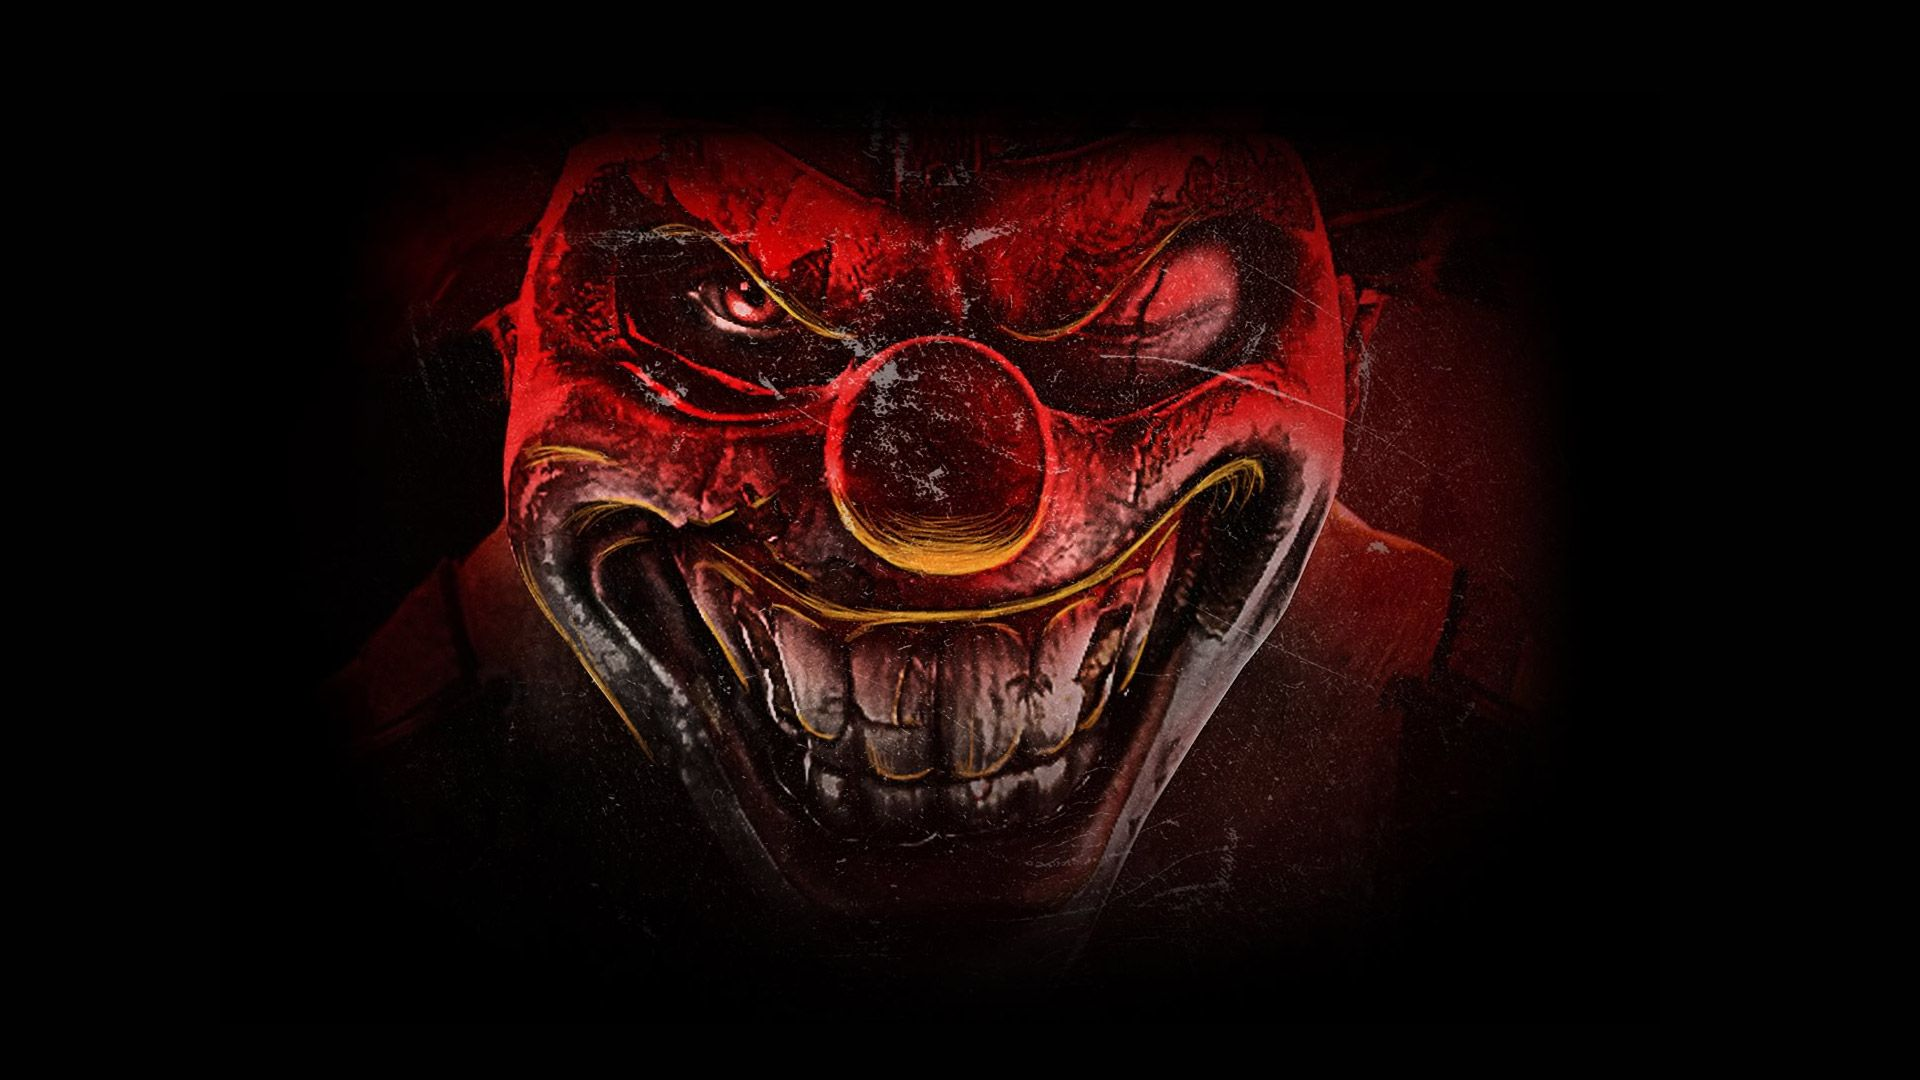 16 twisted metal hd wallpapers backgrounds wallpaper - Sweet tooth wallpaper twisted metal ...